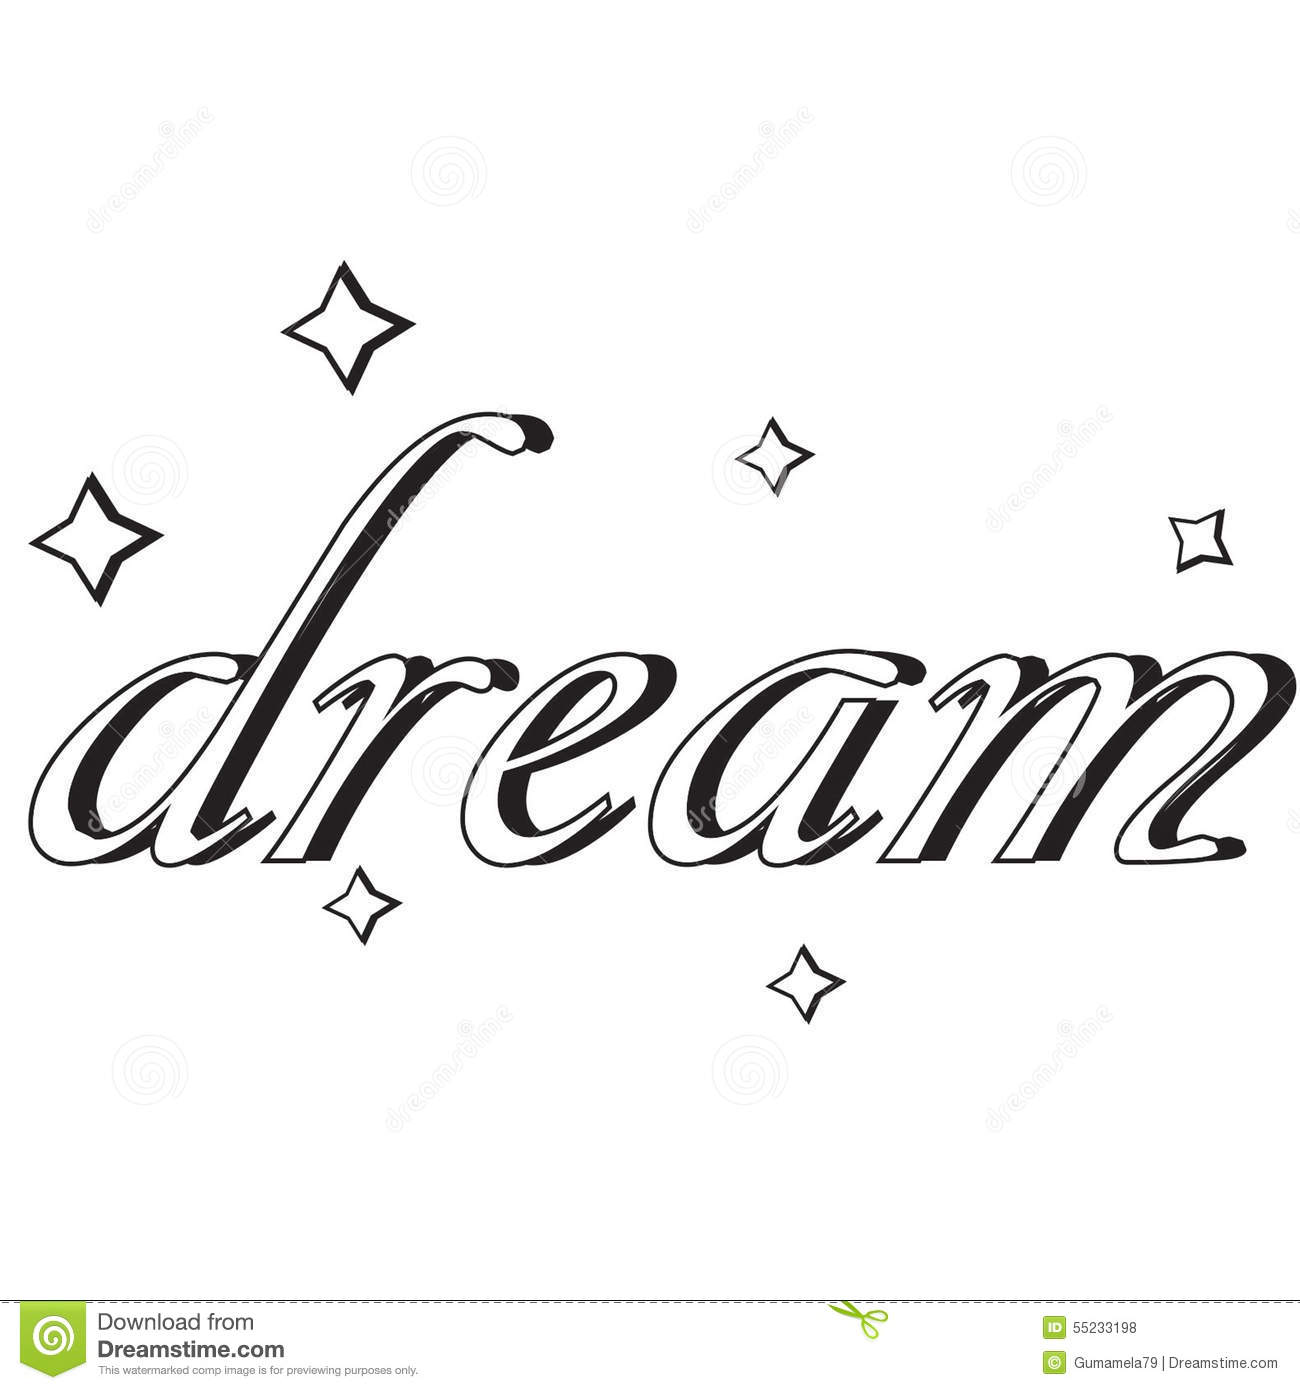 Dream clipart the word Clip Borders Free Clipart Word